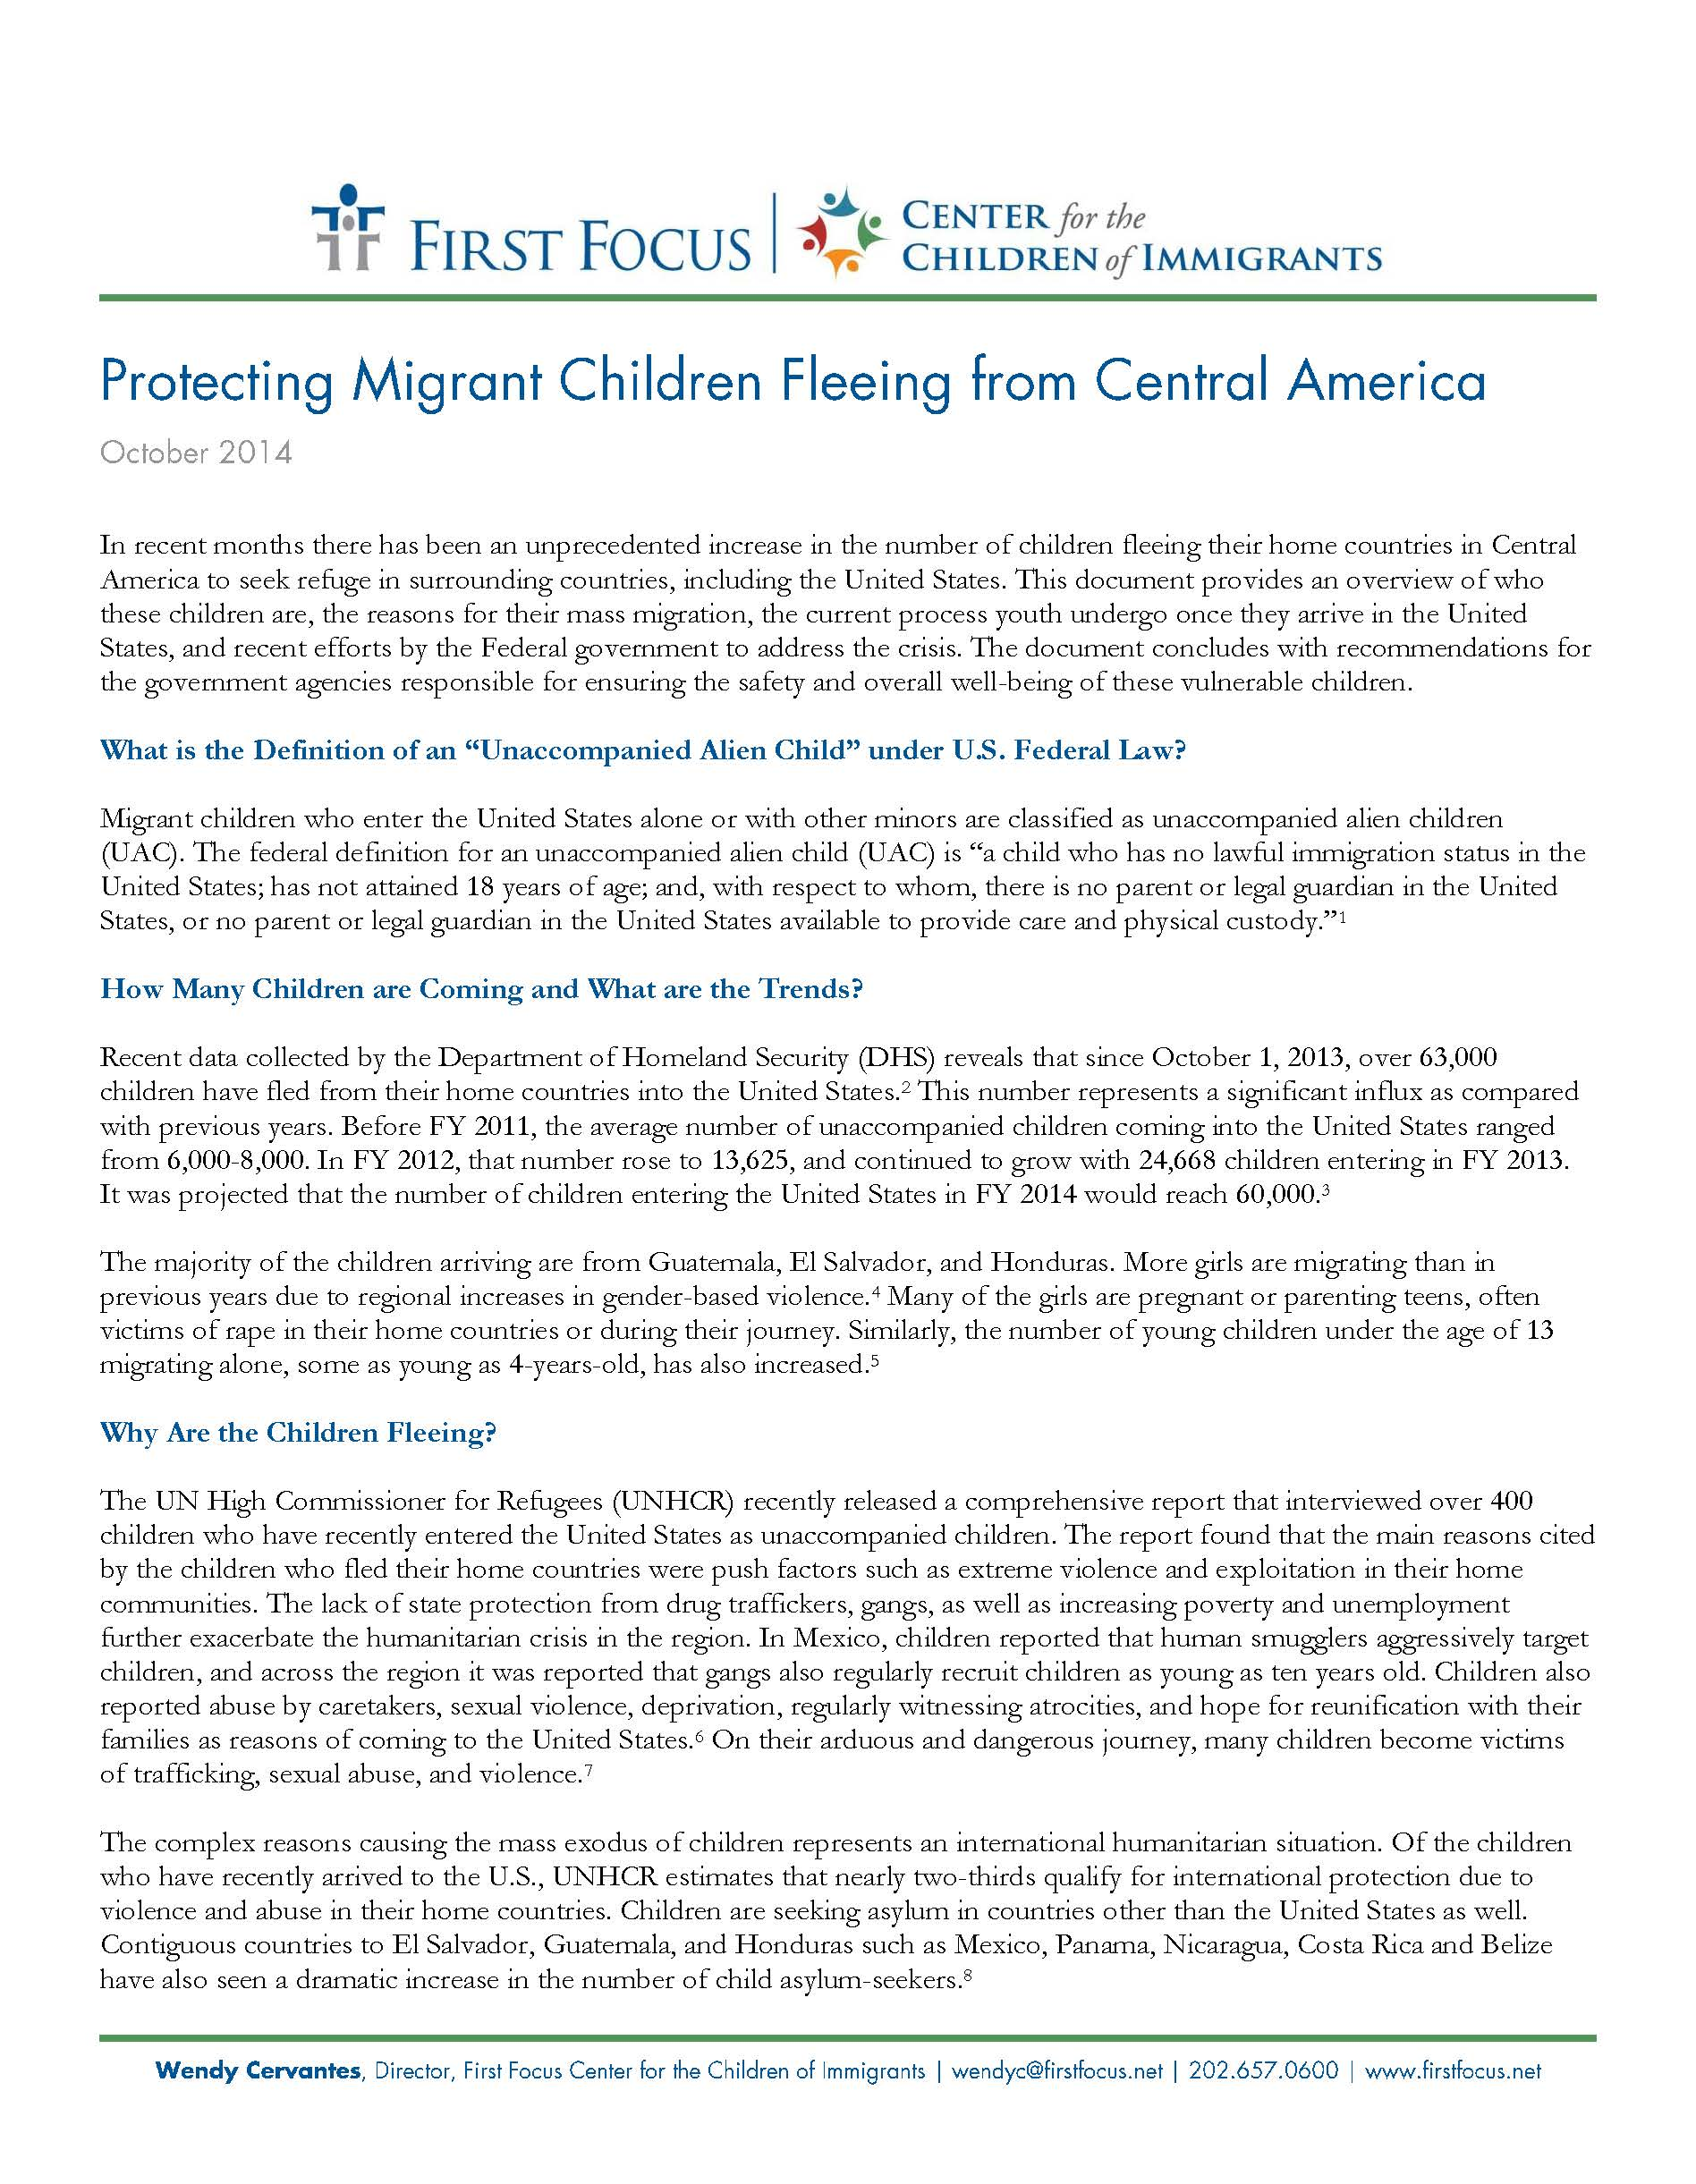 Protecting Migrant Children Fleeing from Central America